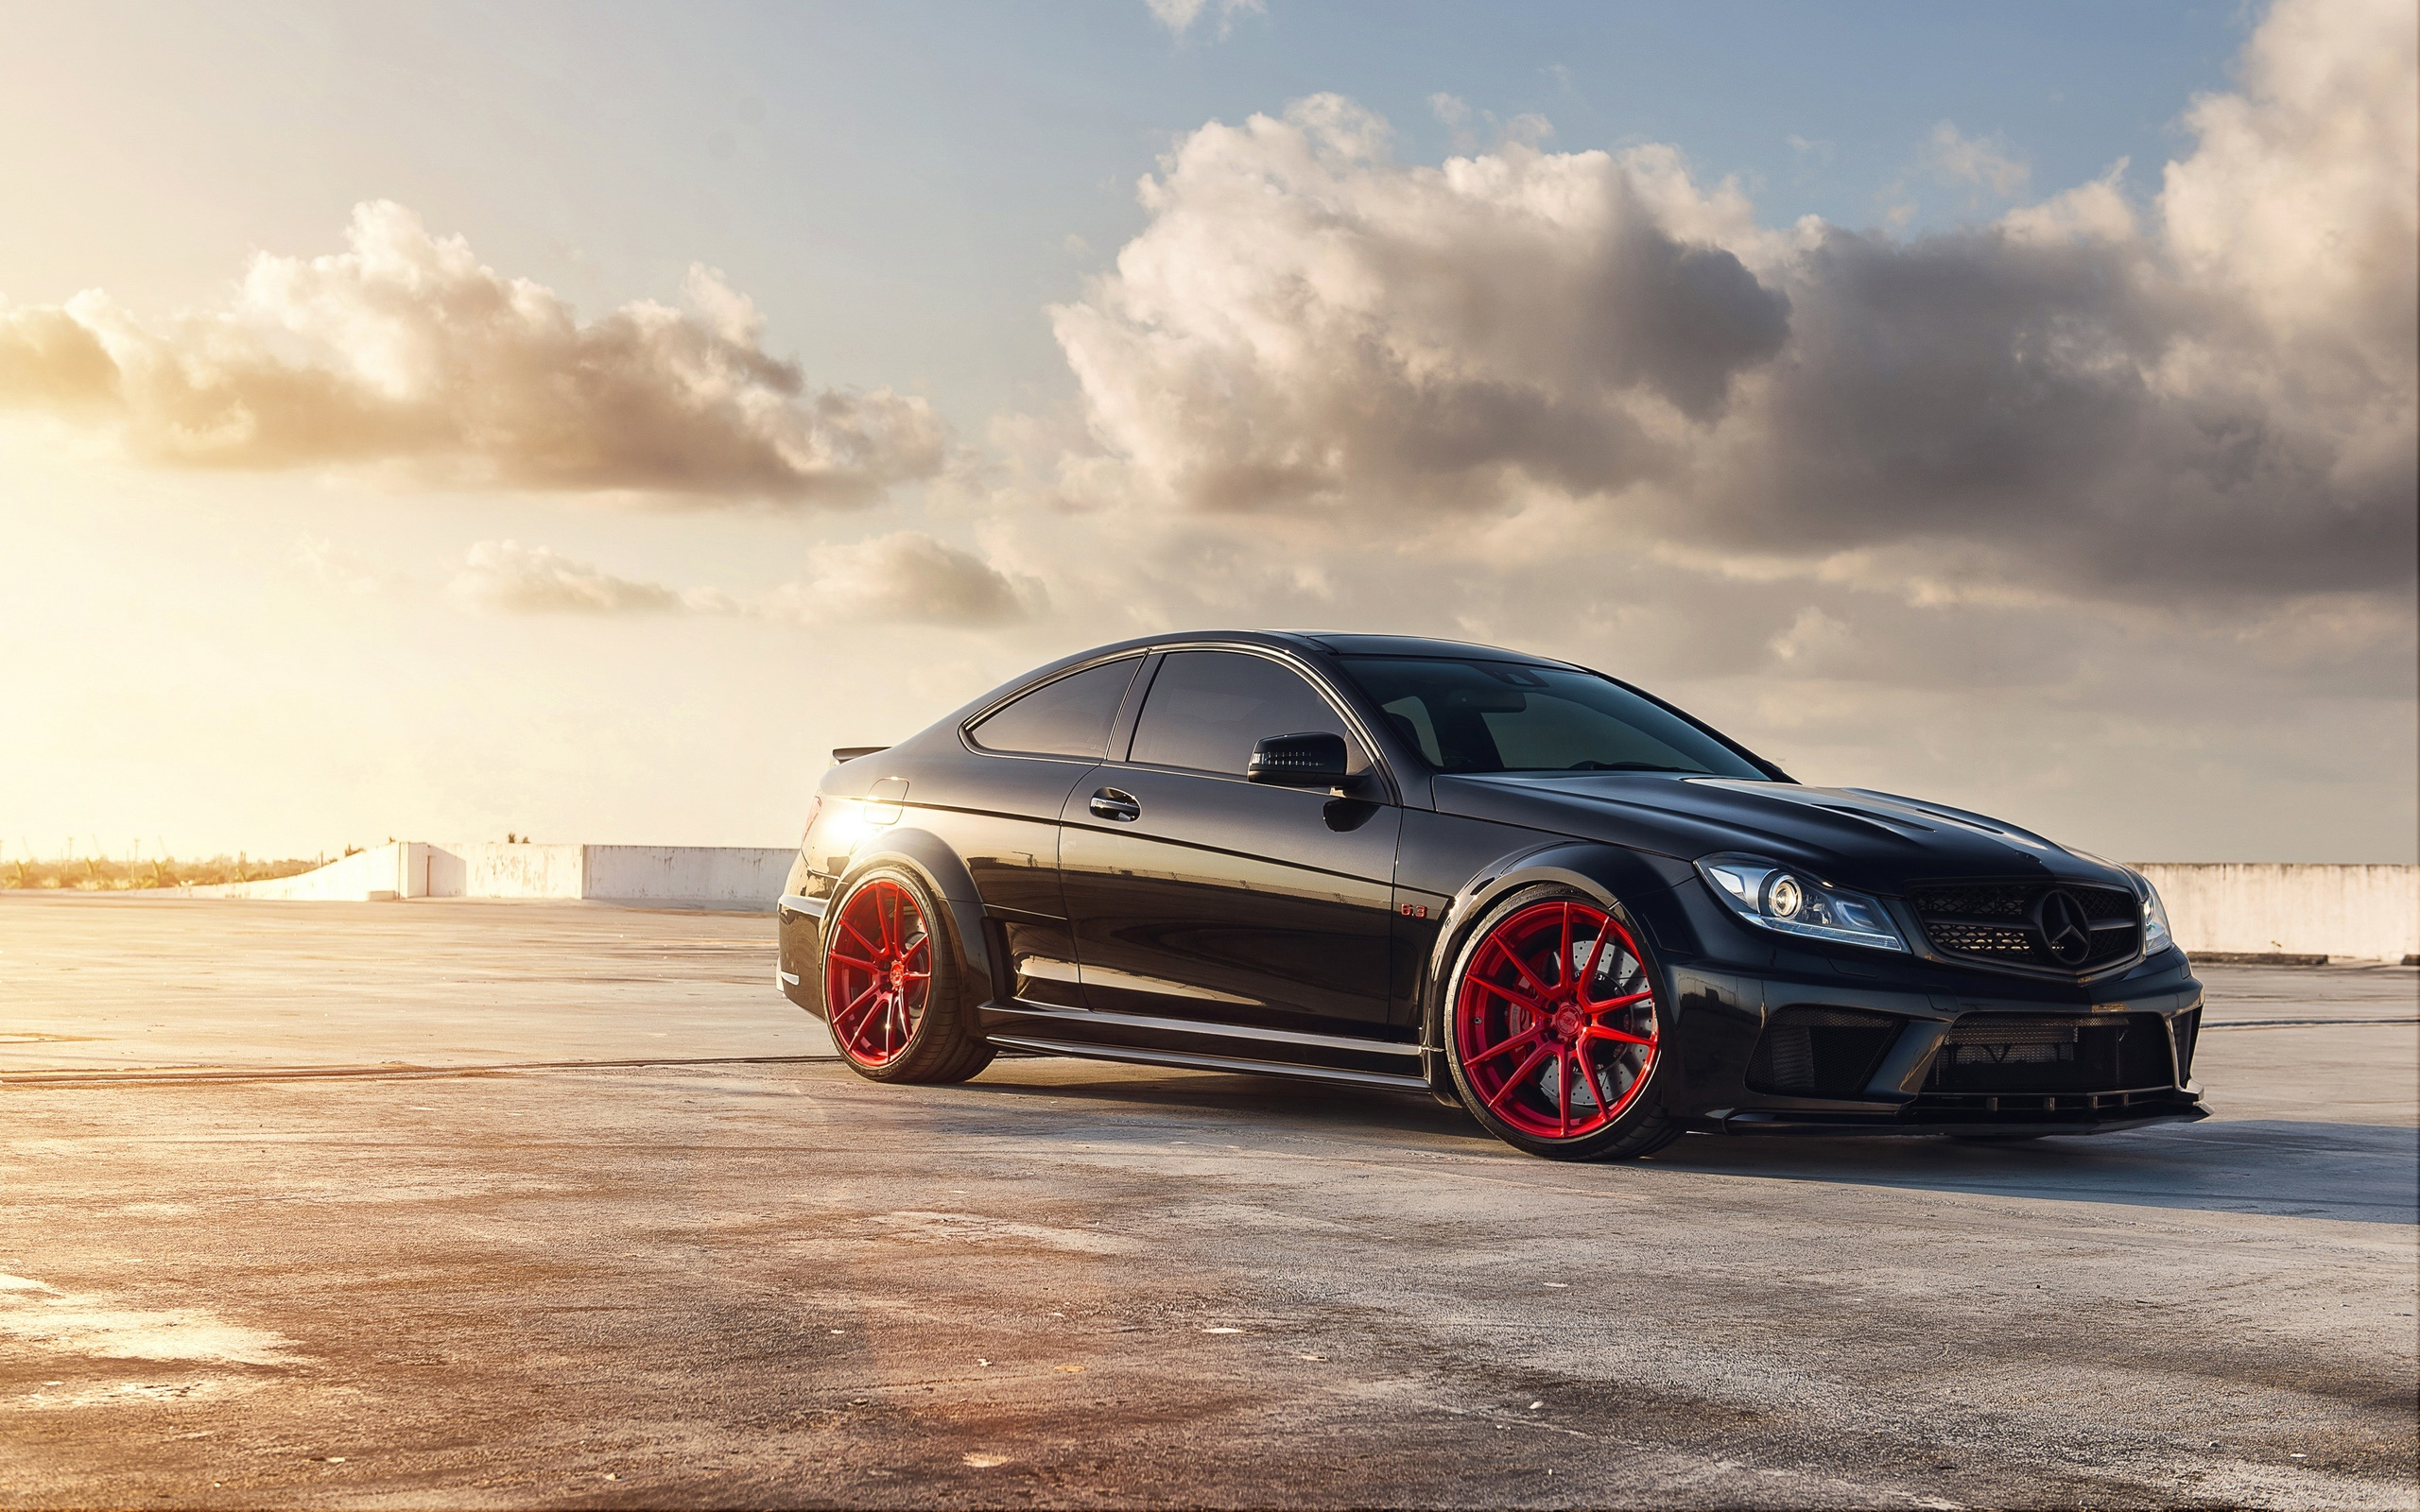 Mercedes Benz C63 AMG Wallpapers in format for free